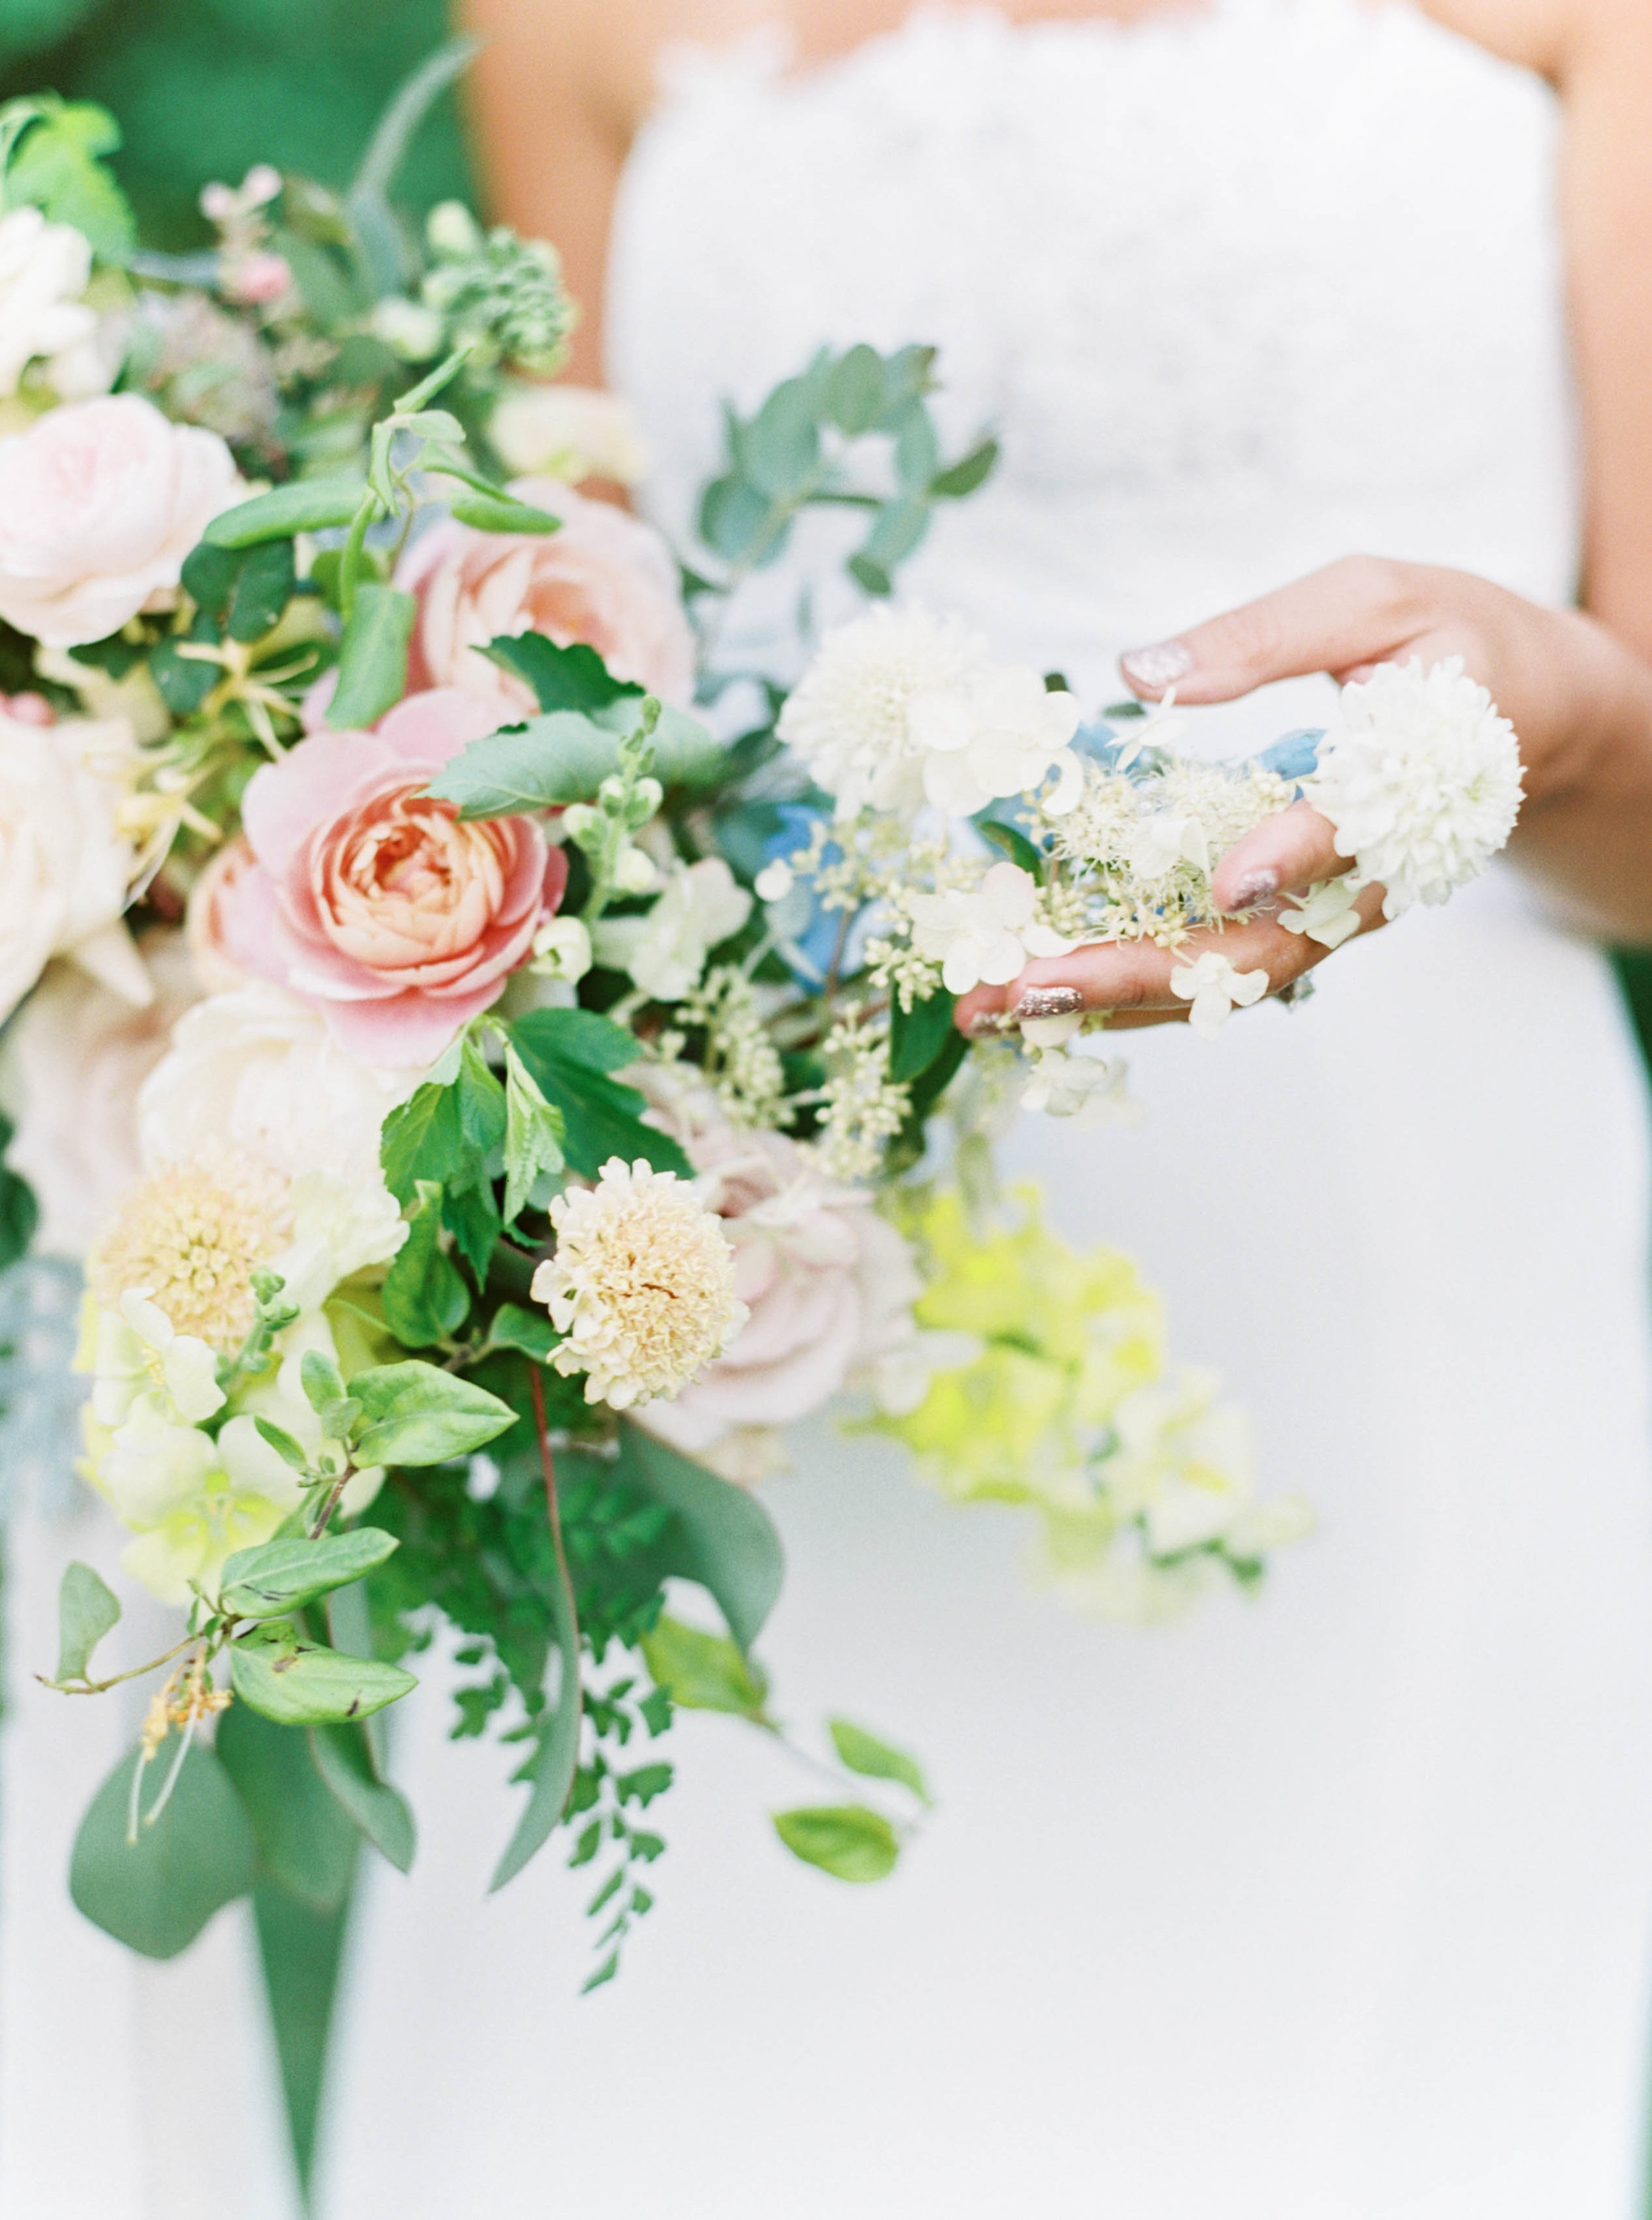 pink, peach and blue wedding bouquet with roses, dahlias and summer flowers by foraged floral in oregon.jpg